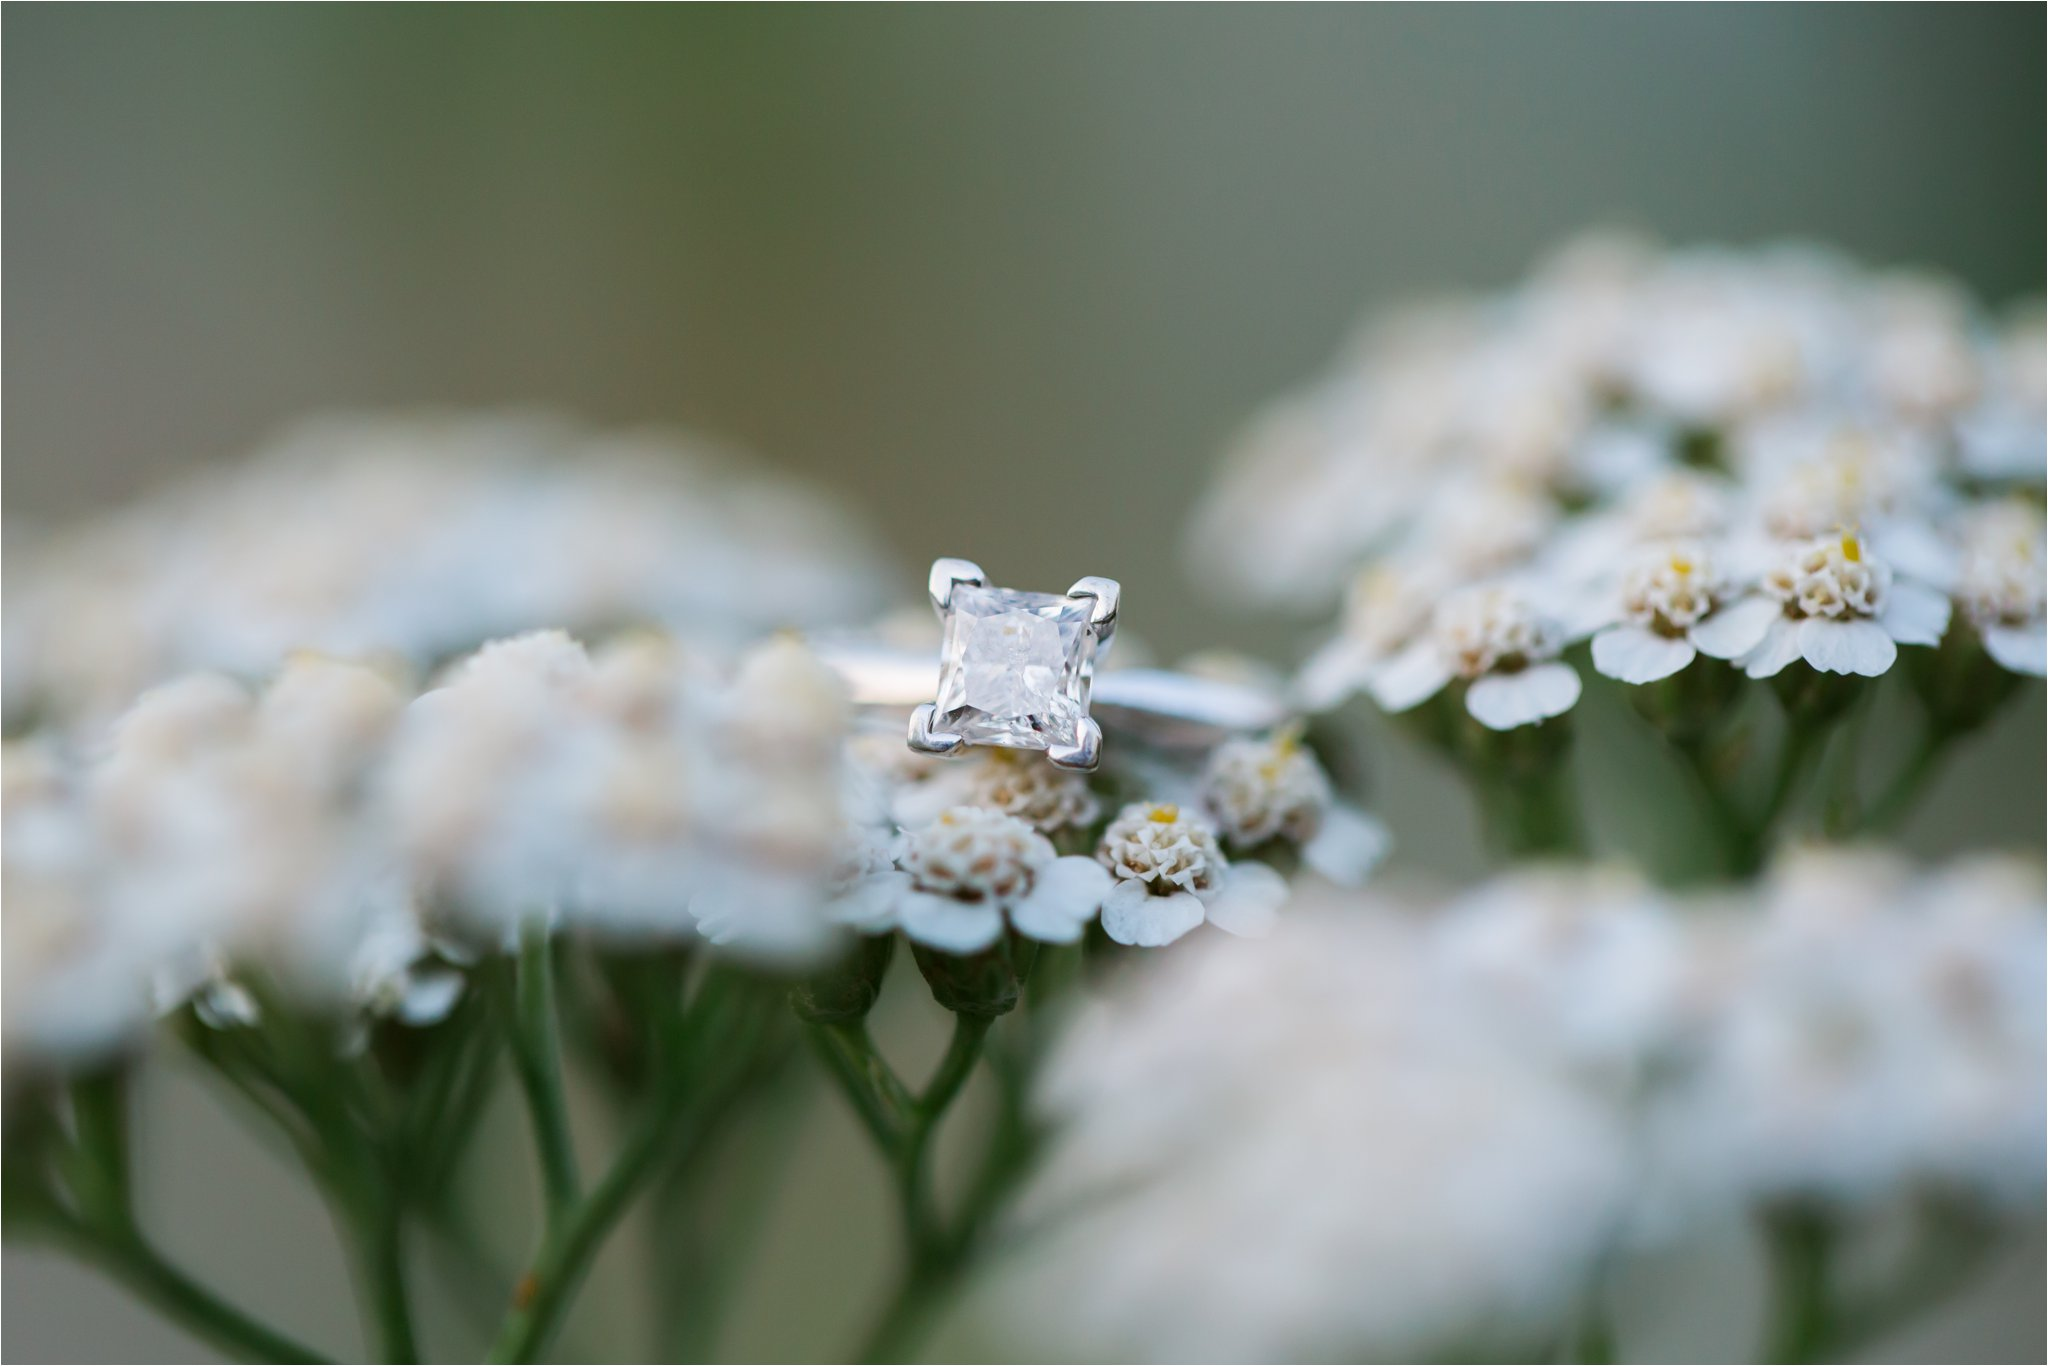 Engagement Ring on White Flowers (C) Maundy Mitchell